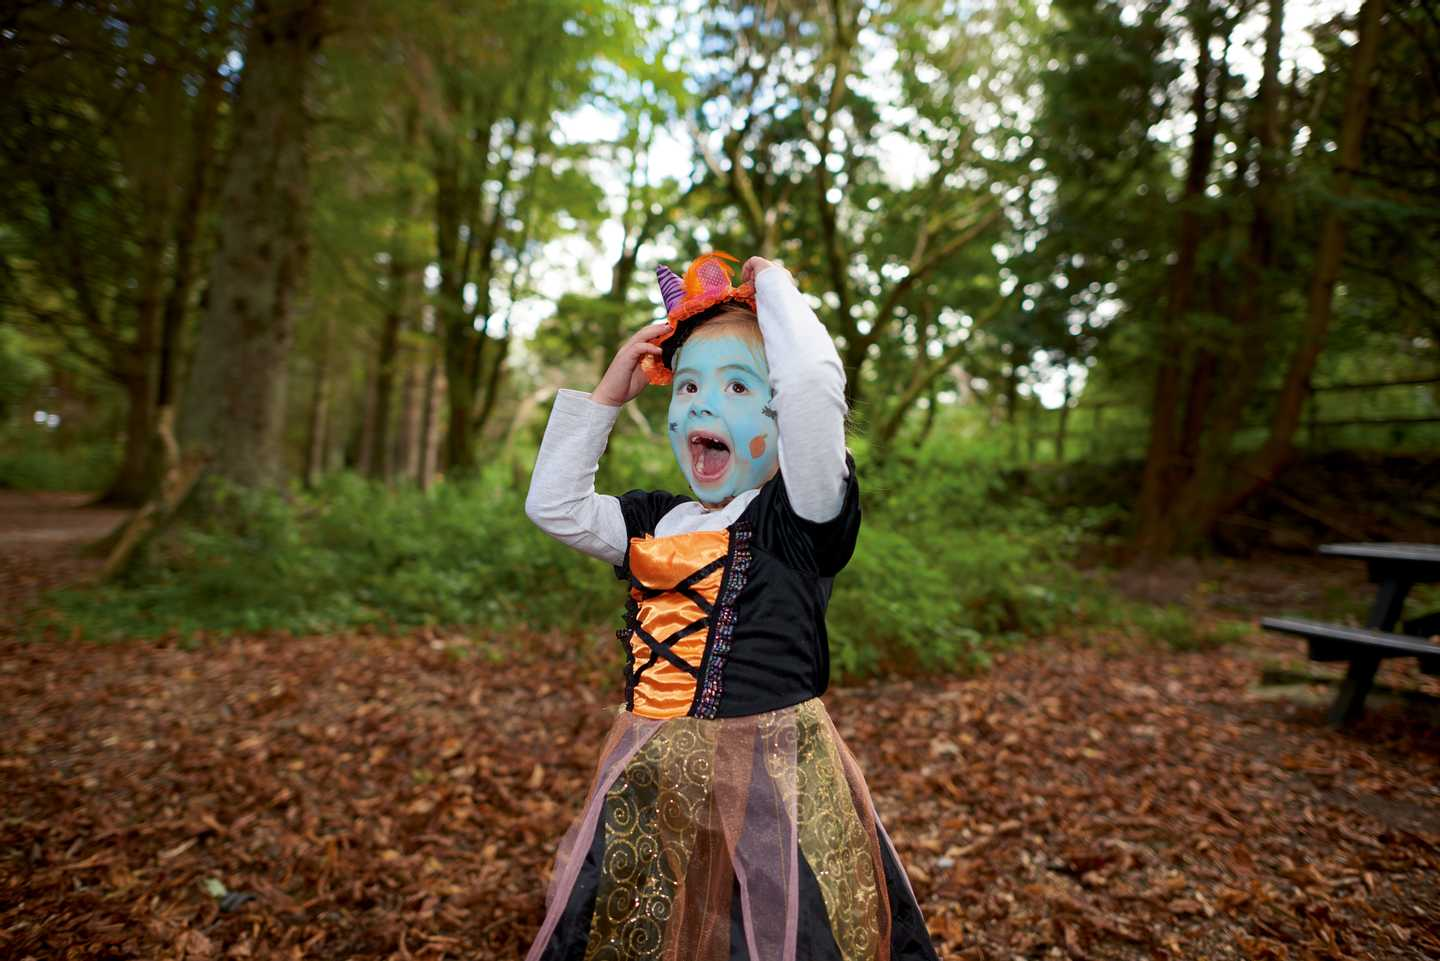 A girl dressed up for Halloween playing in the woods